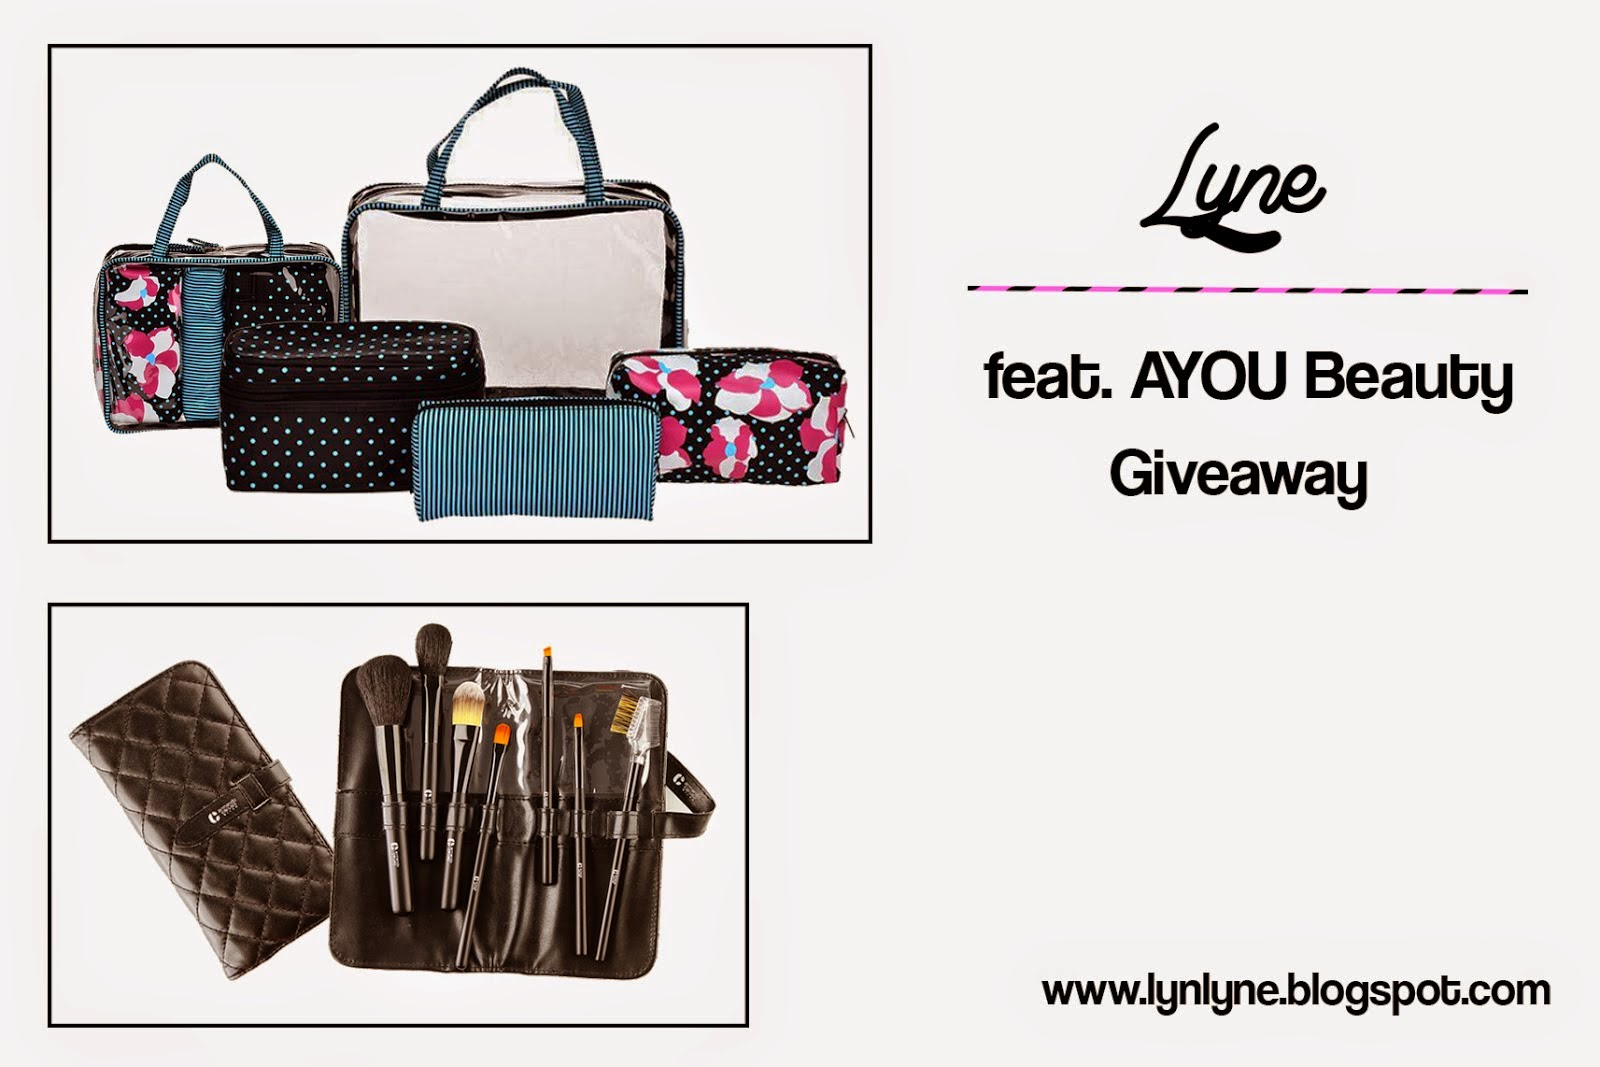 Lyne Ft. AYOU Beauty Giveaway